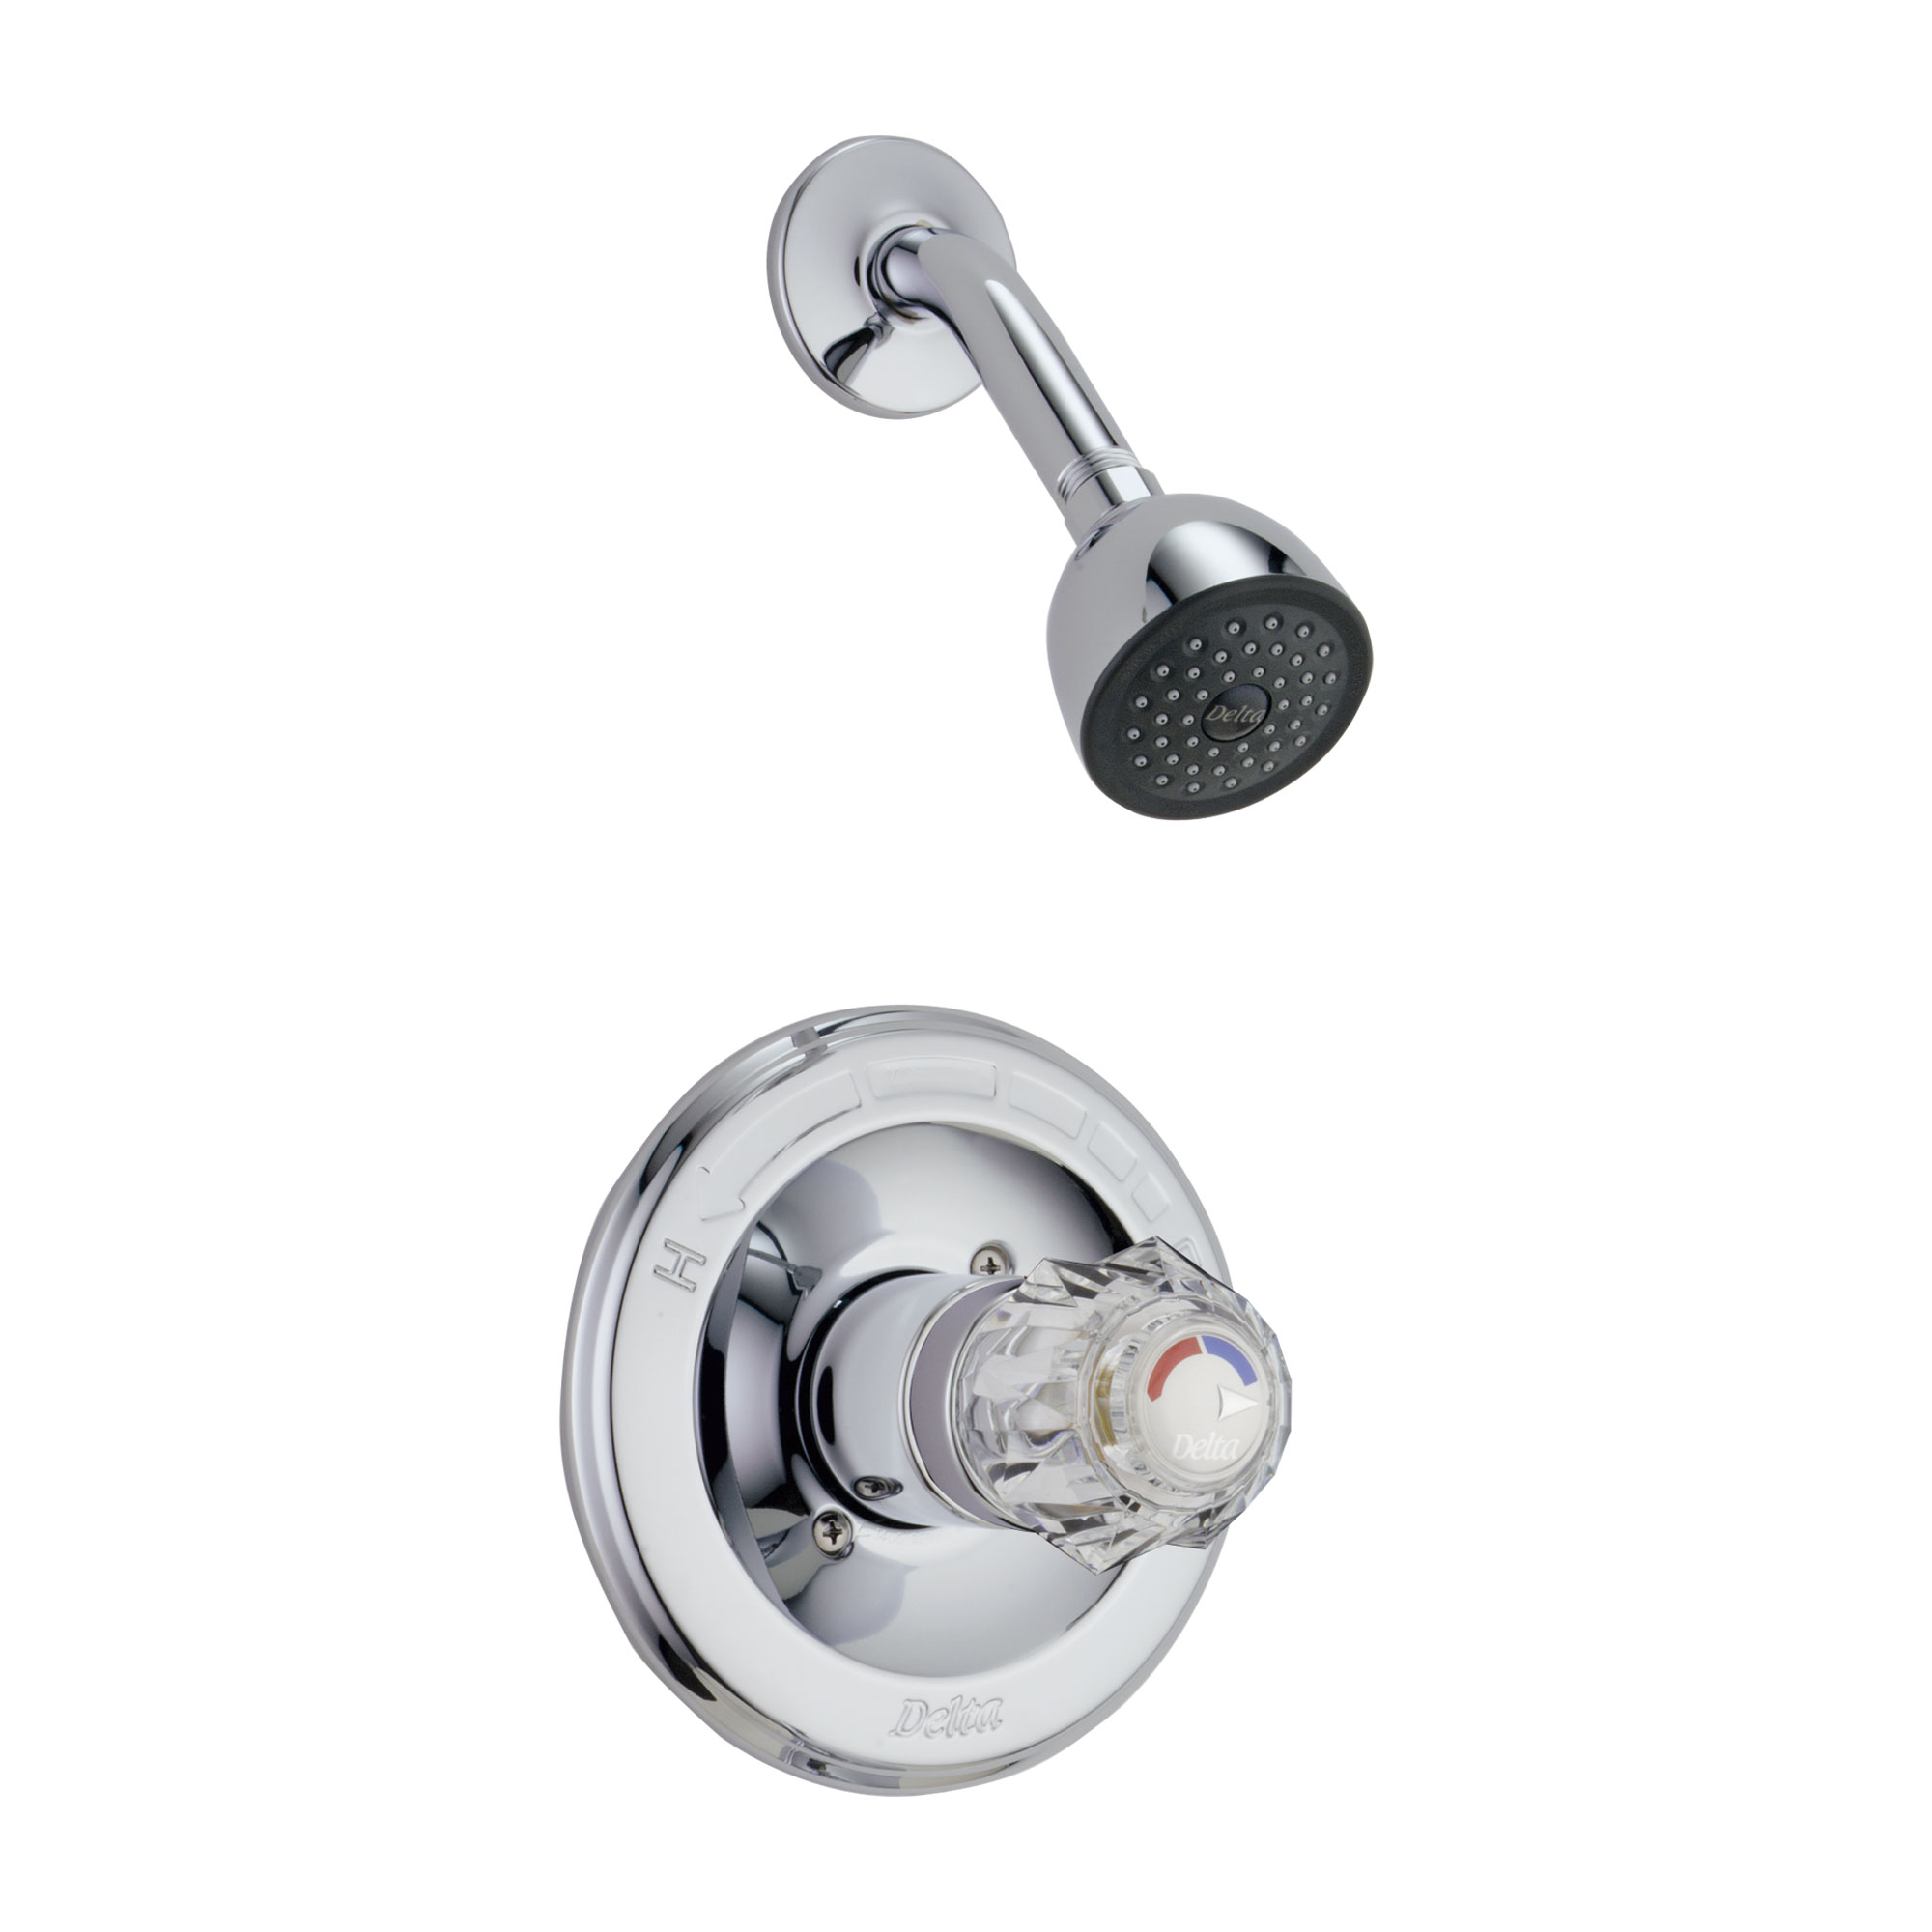 Delta 1324 Classic Monitor® 13 Series Shower